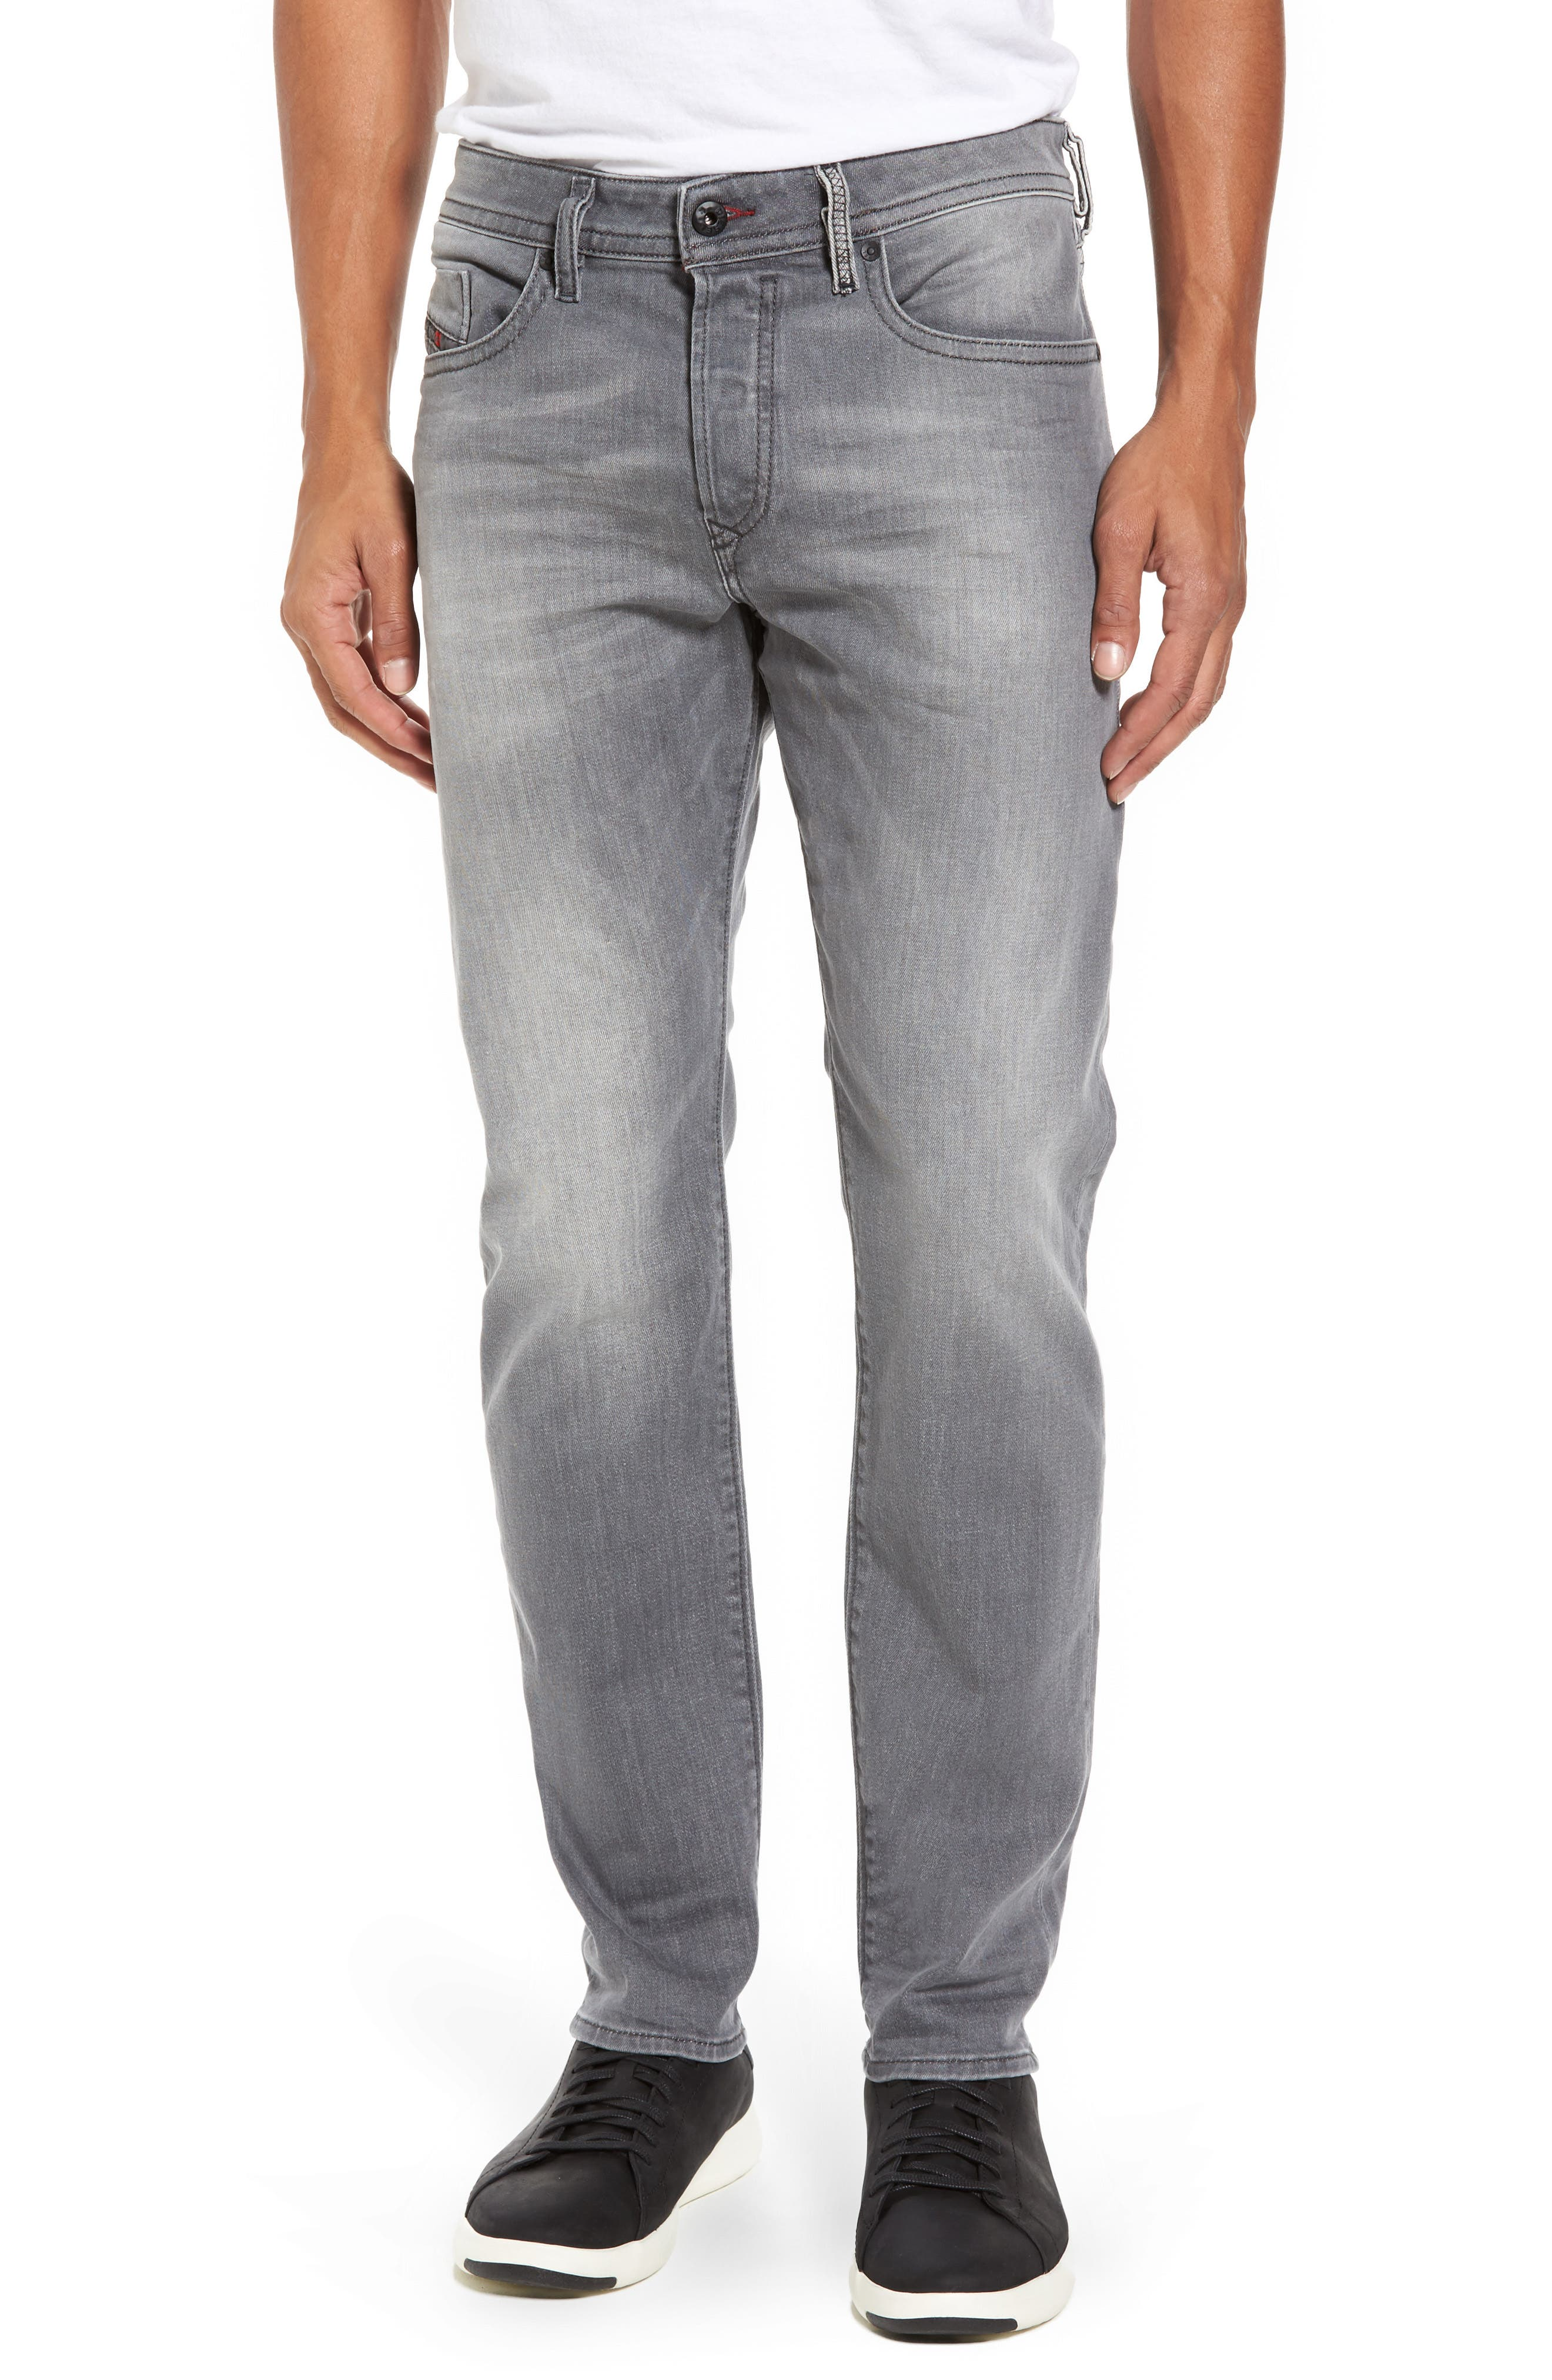 Buster Slim Straight Leg Jeans,                         Main,                         color, 020